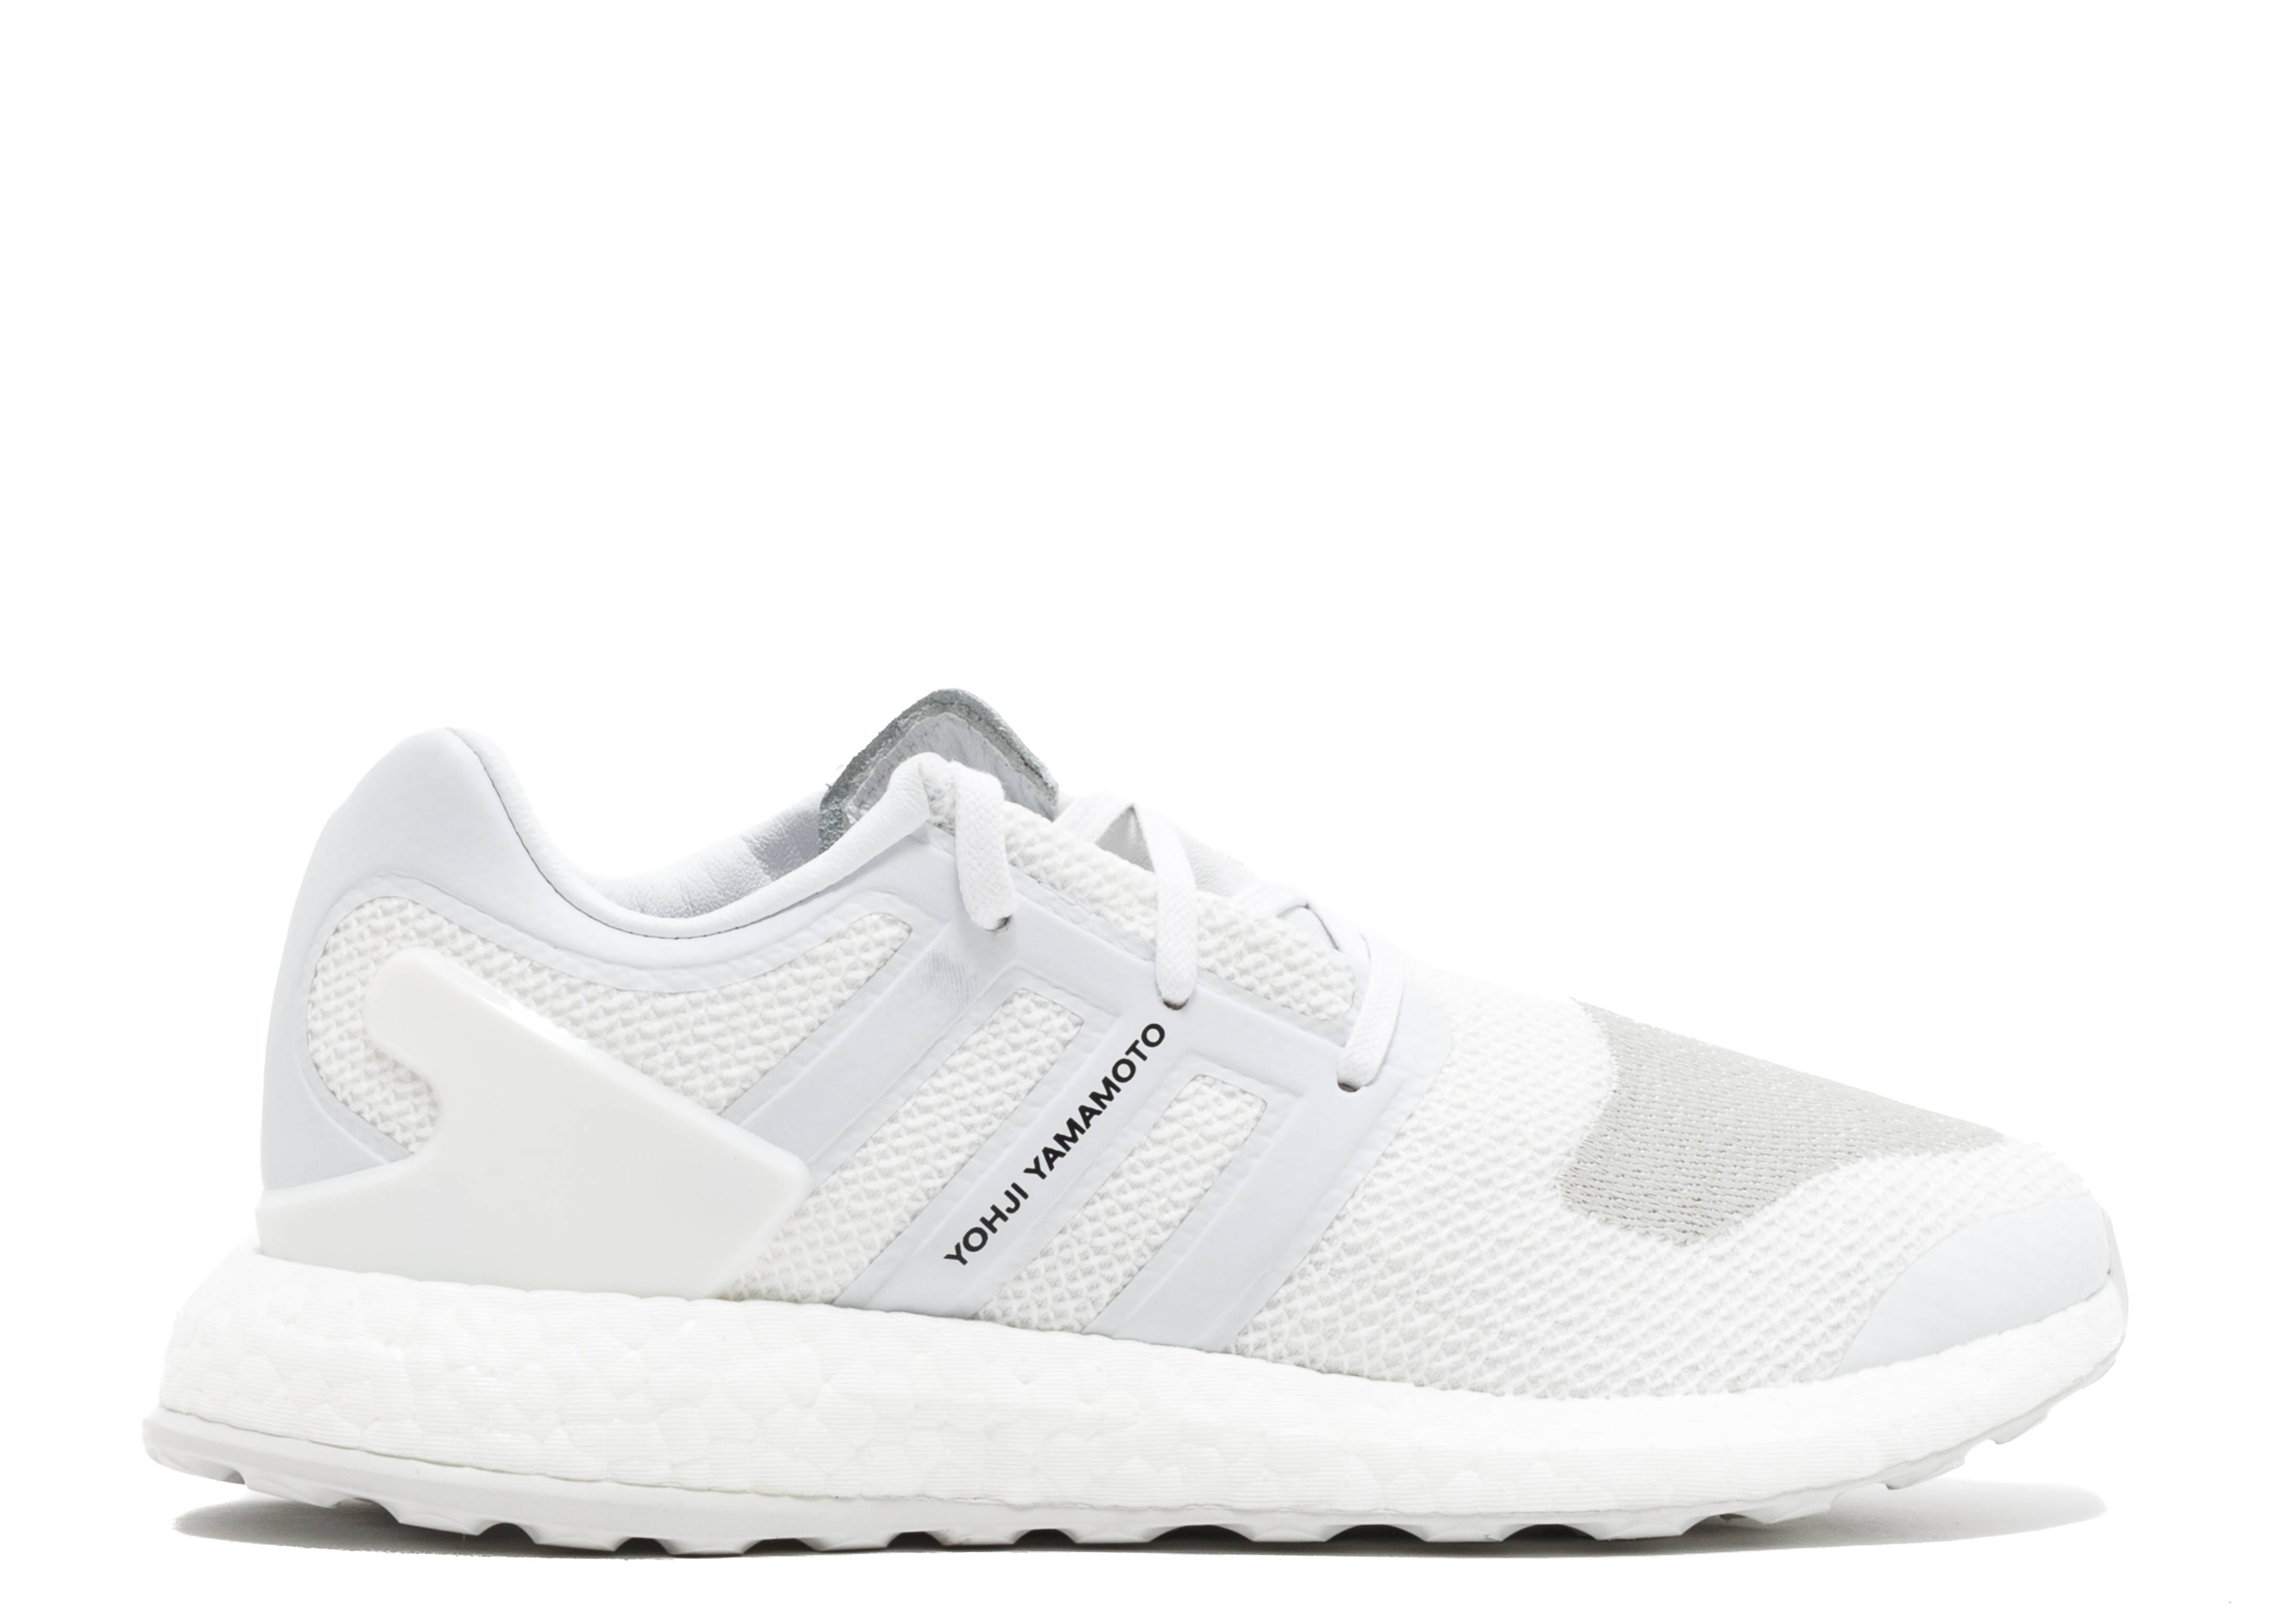 check out d84e8 85266 adidas. y-3 pureboost